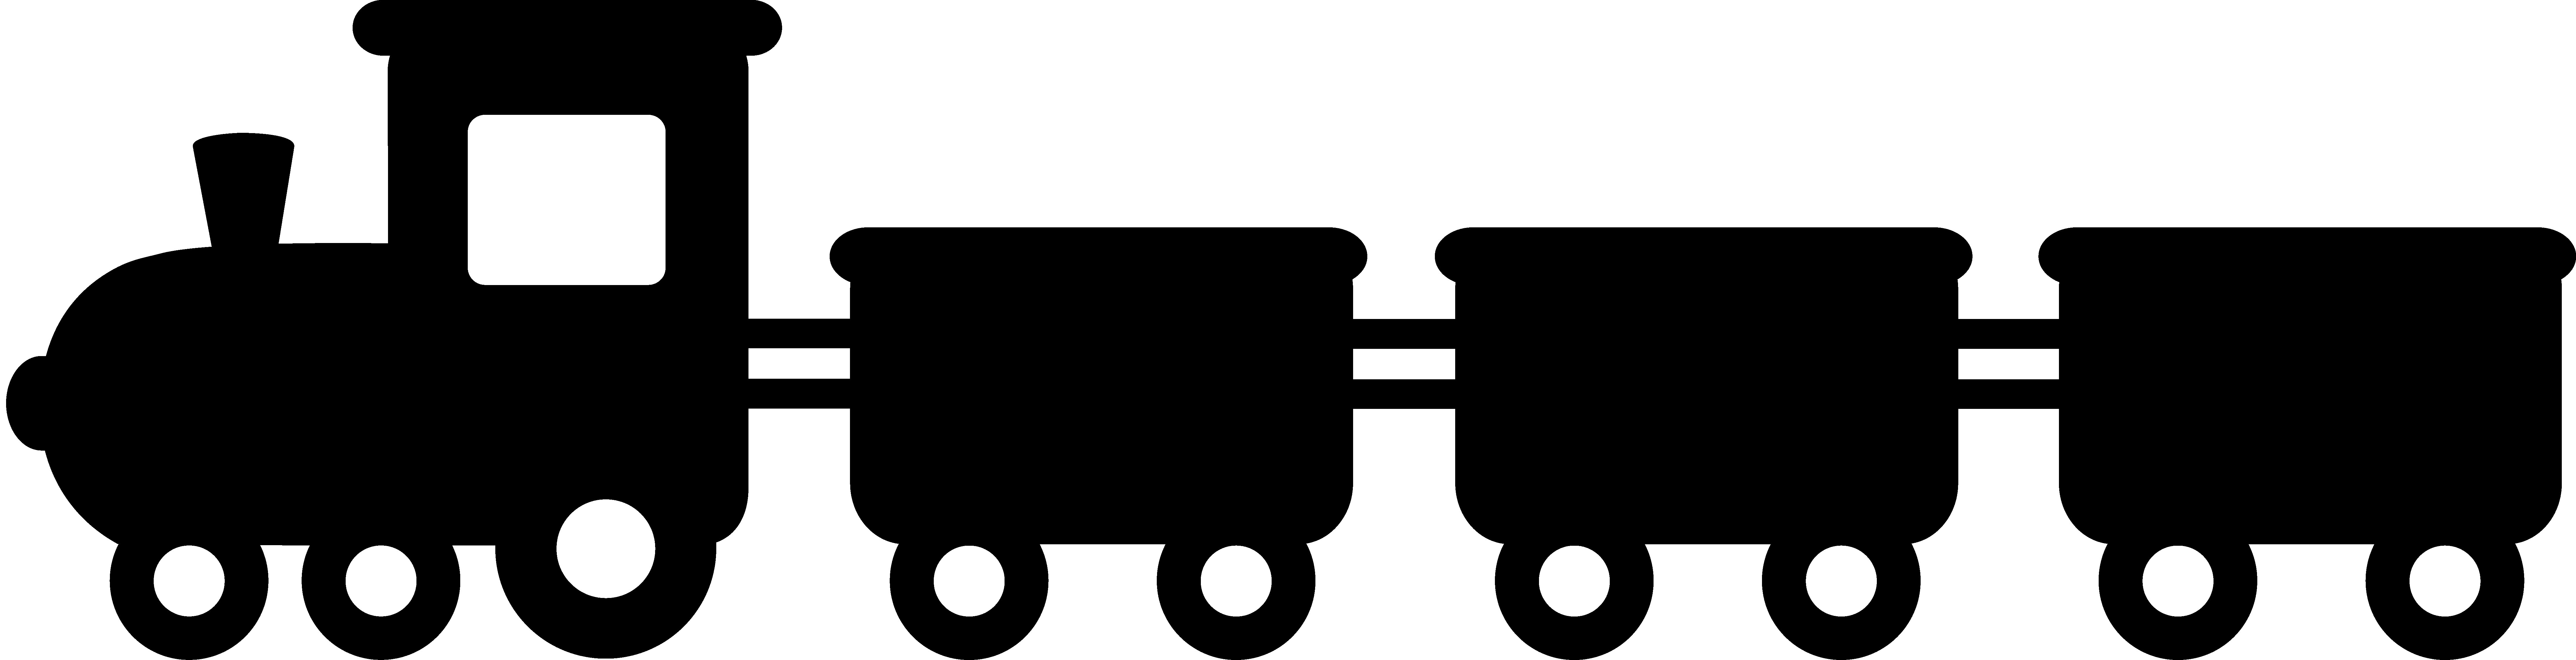 train silhouette clip art at getdrawings com free for personal use rh getdrawings com free track clipart images free track clipart